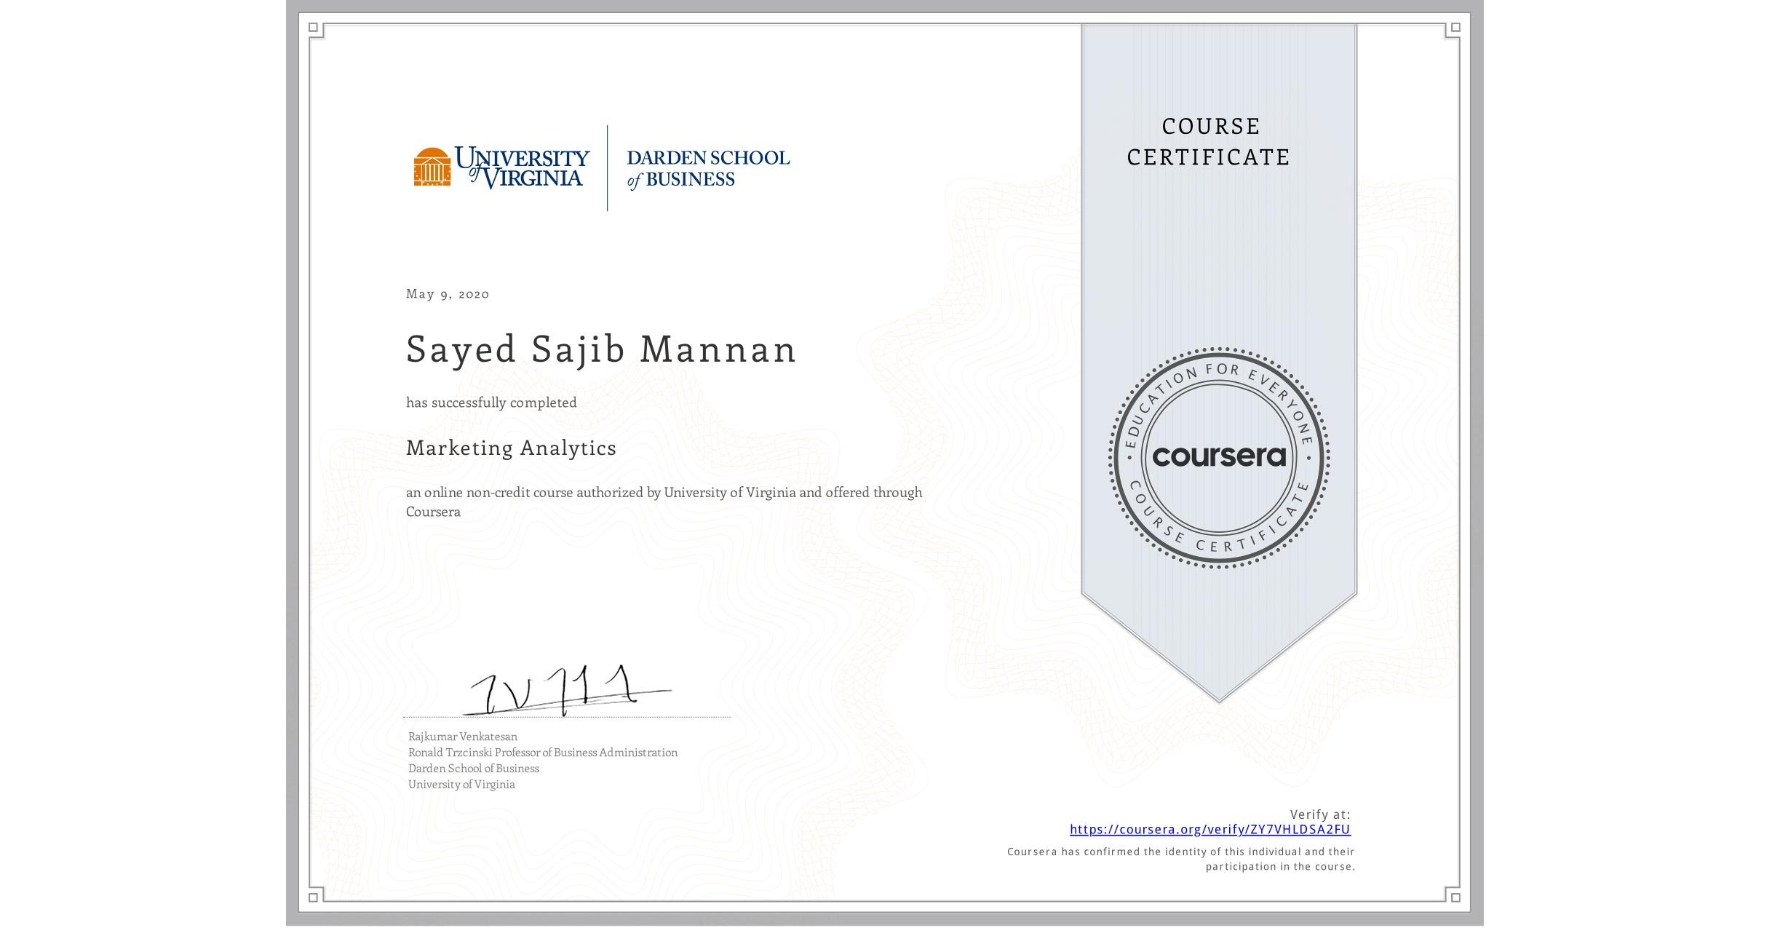 View certificate for Sayed Sajib  Mannan, Marketing Analytics, an online non-credit course authorized by University of Virginia and offered through Coursera